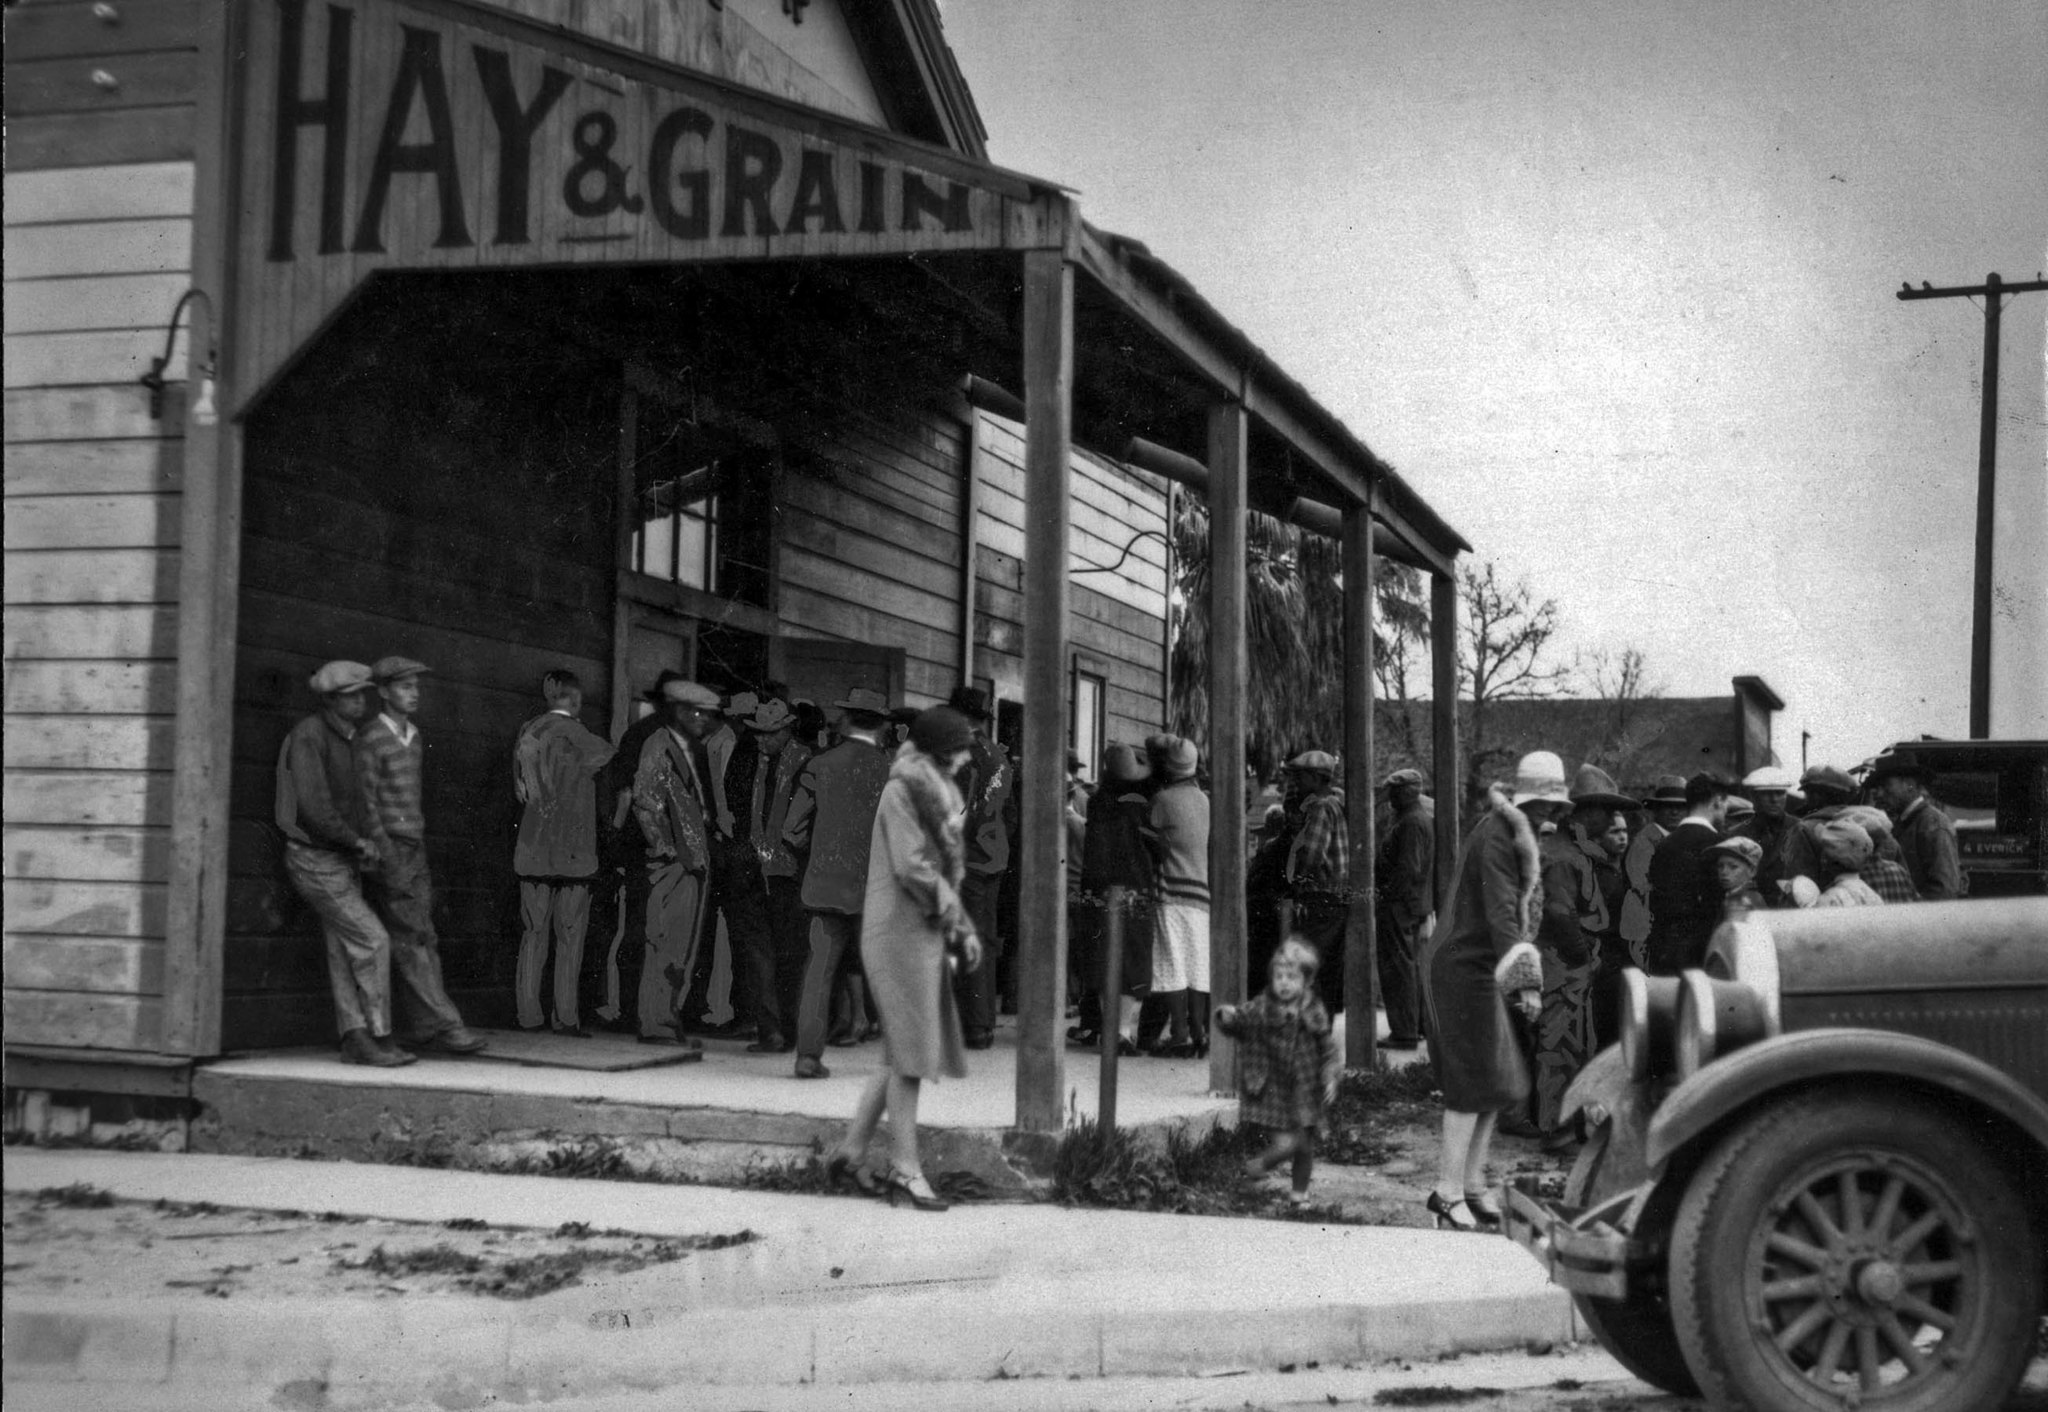 March 14. 1928: Crowd gathers outside temporary morgue seeking to identify victims. The first search